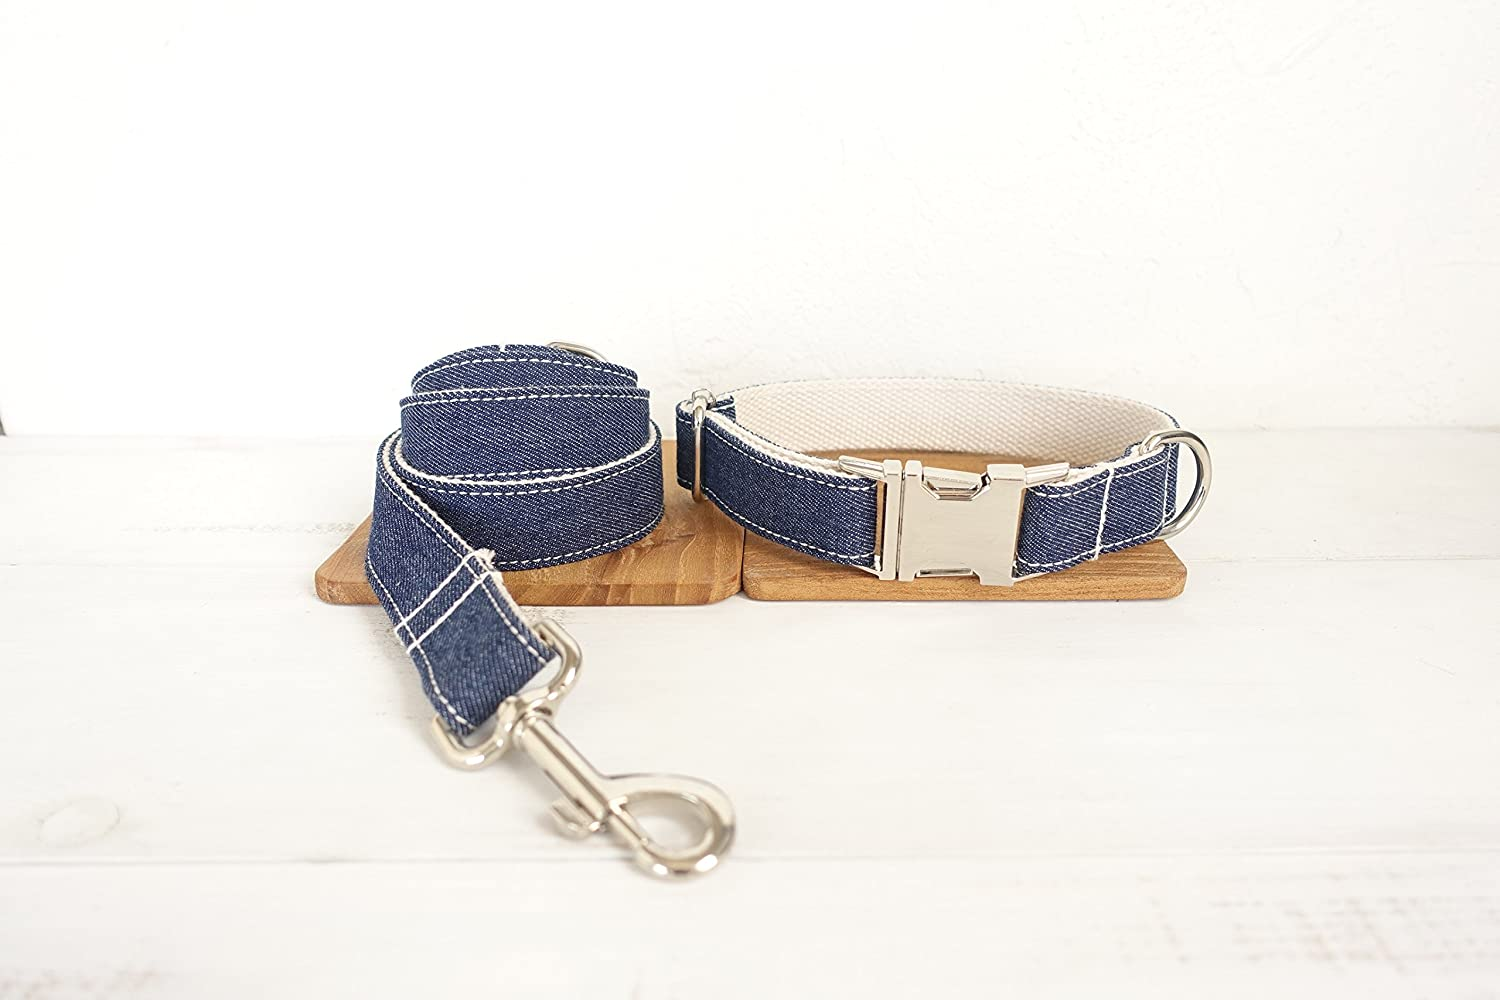 Amazon.com : Mew Denim pet dog circled blue rope/dog ring suit, Metal buckles new (XL) : Pet Supplies